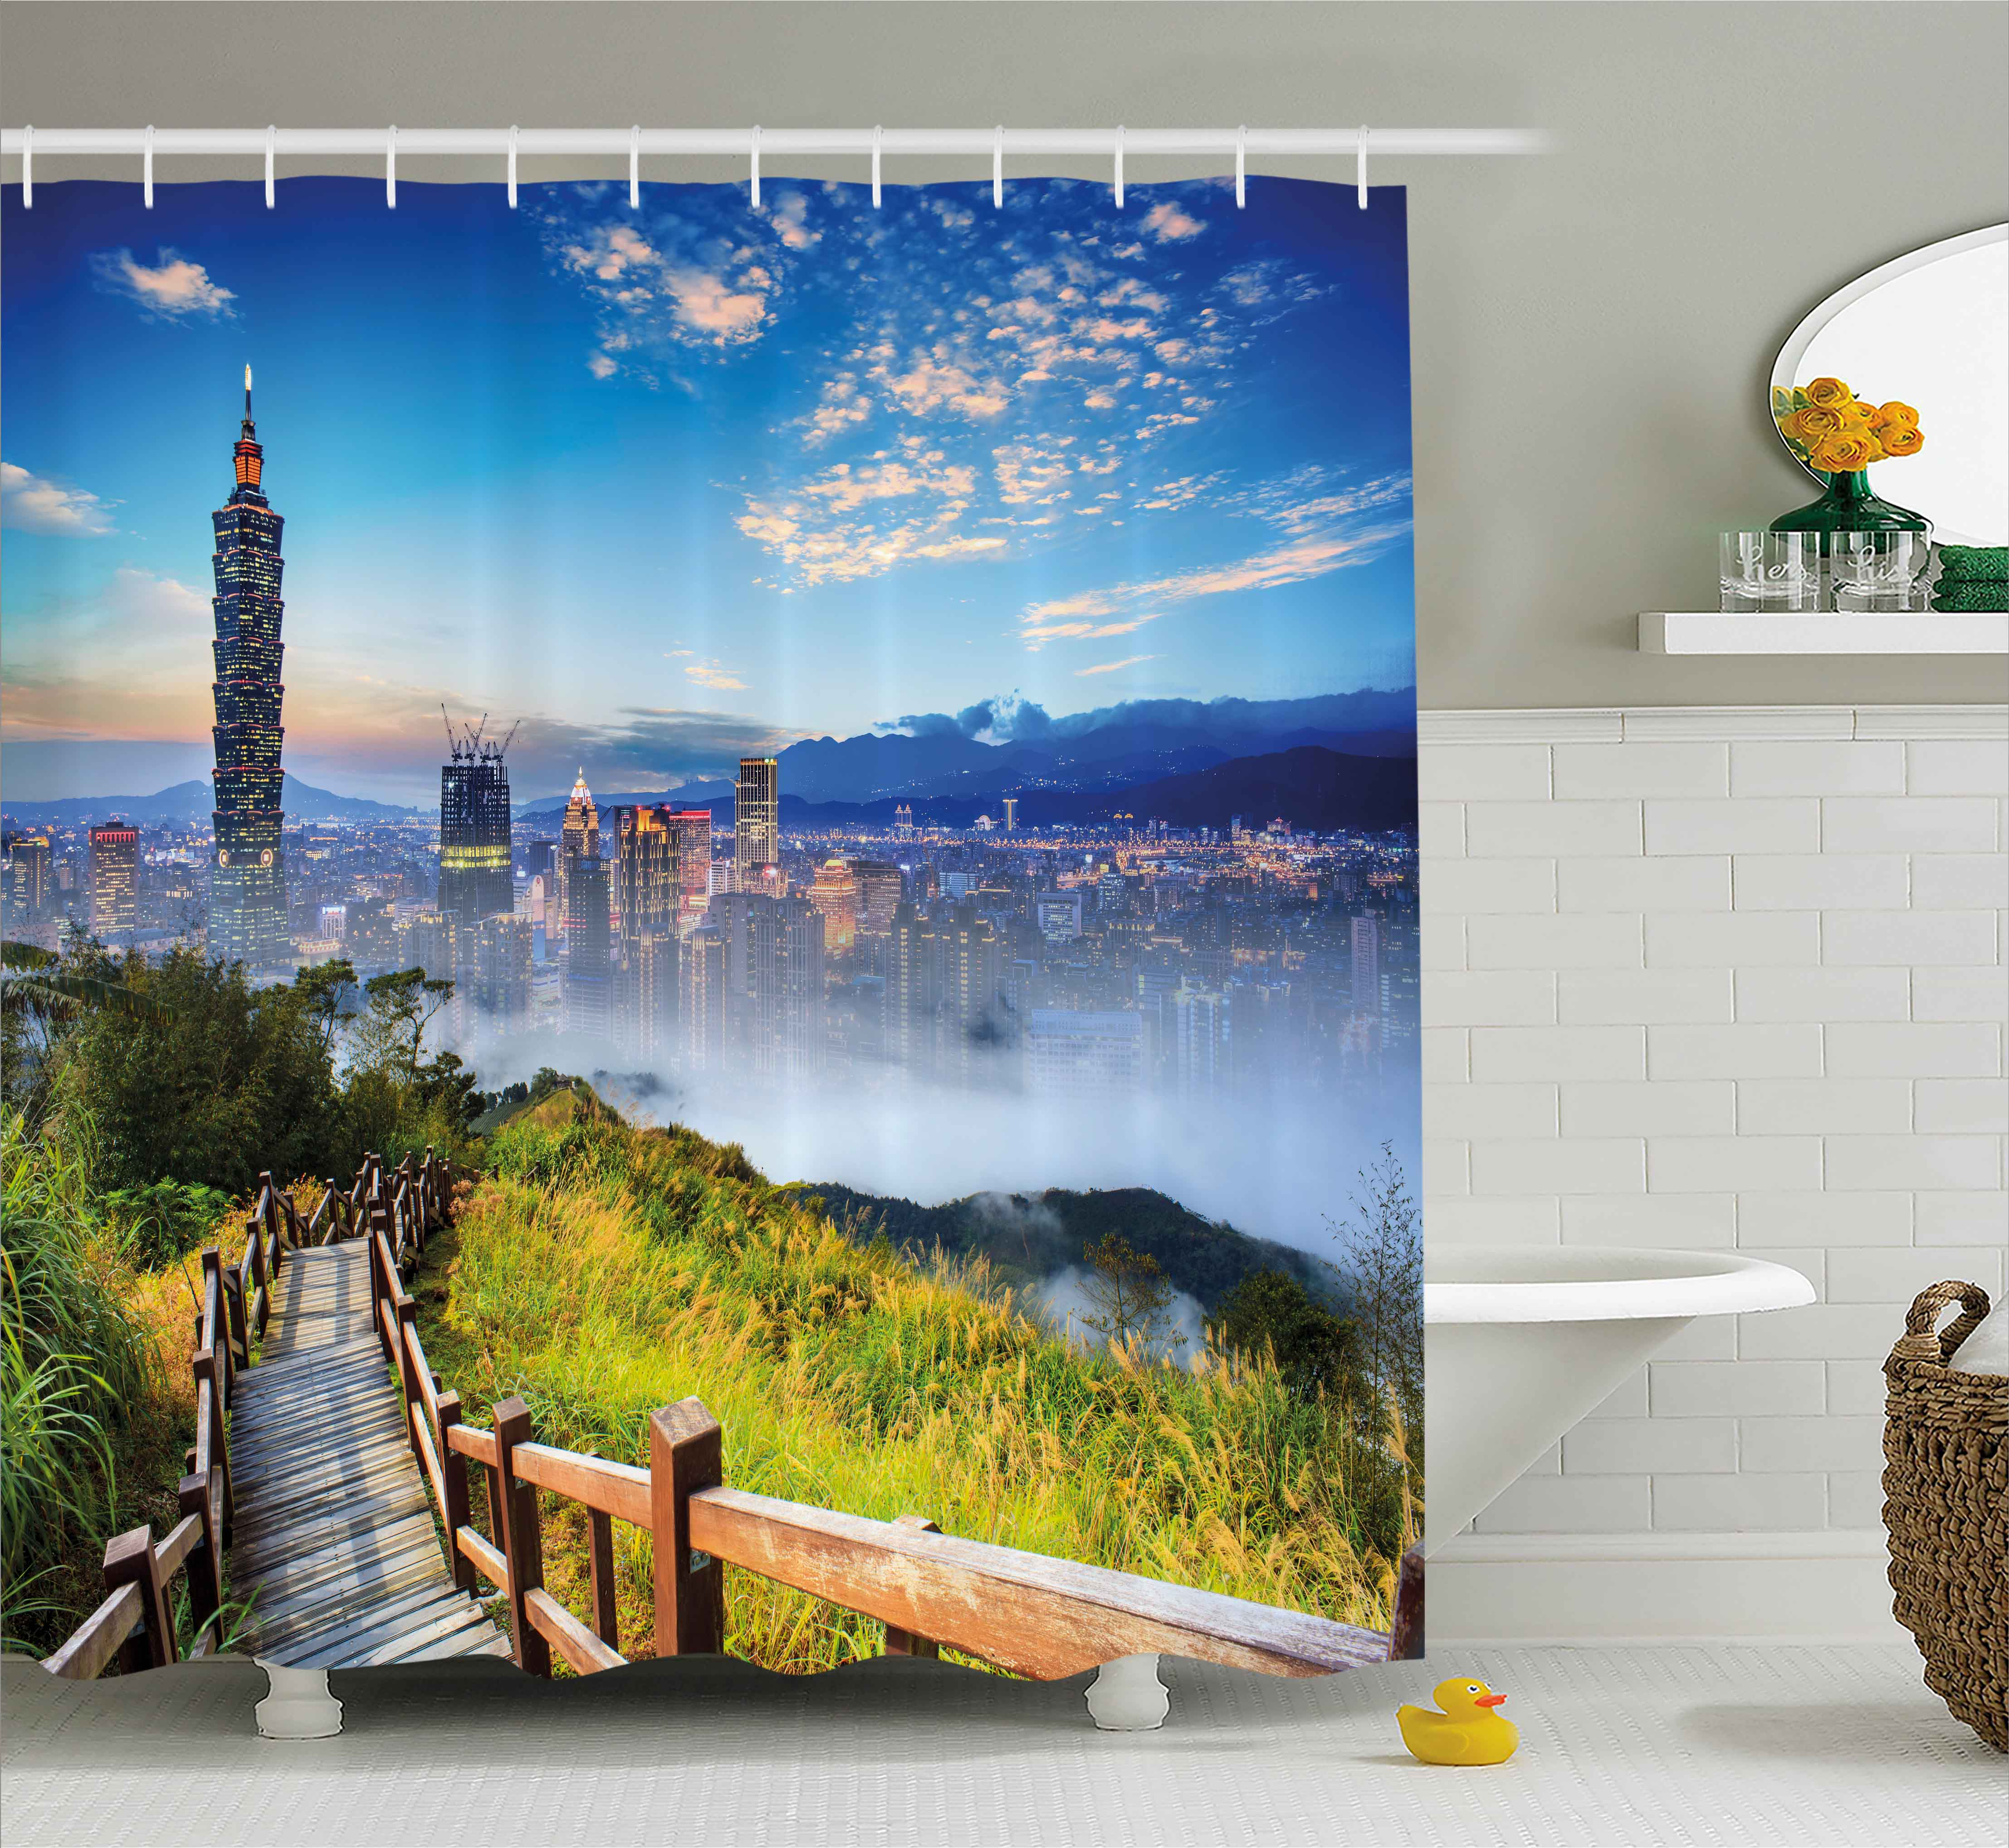 Shower Curtains Extra Long Nature Scenery Printed Bathroom